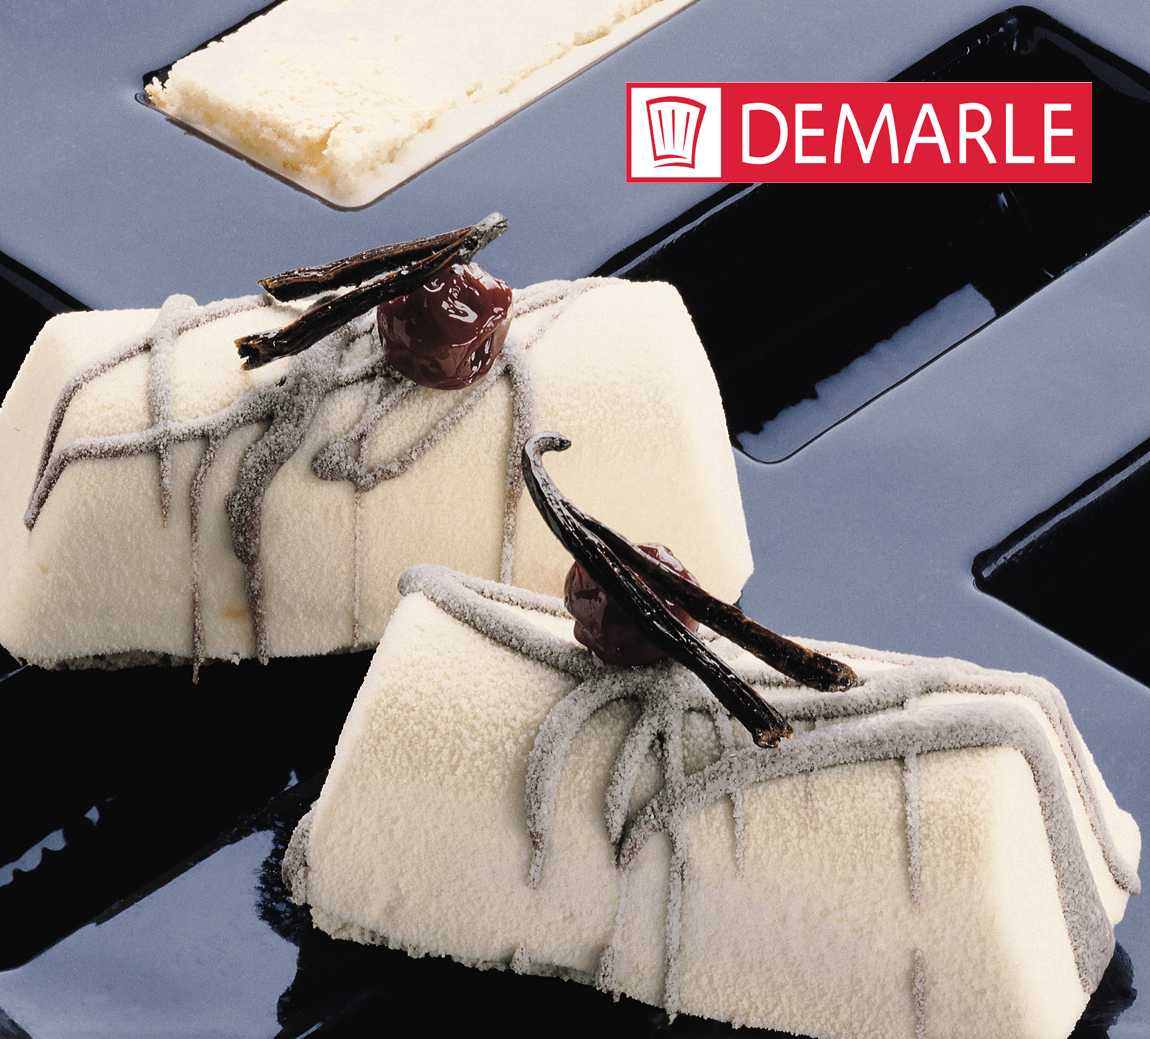 Demarle Logs